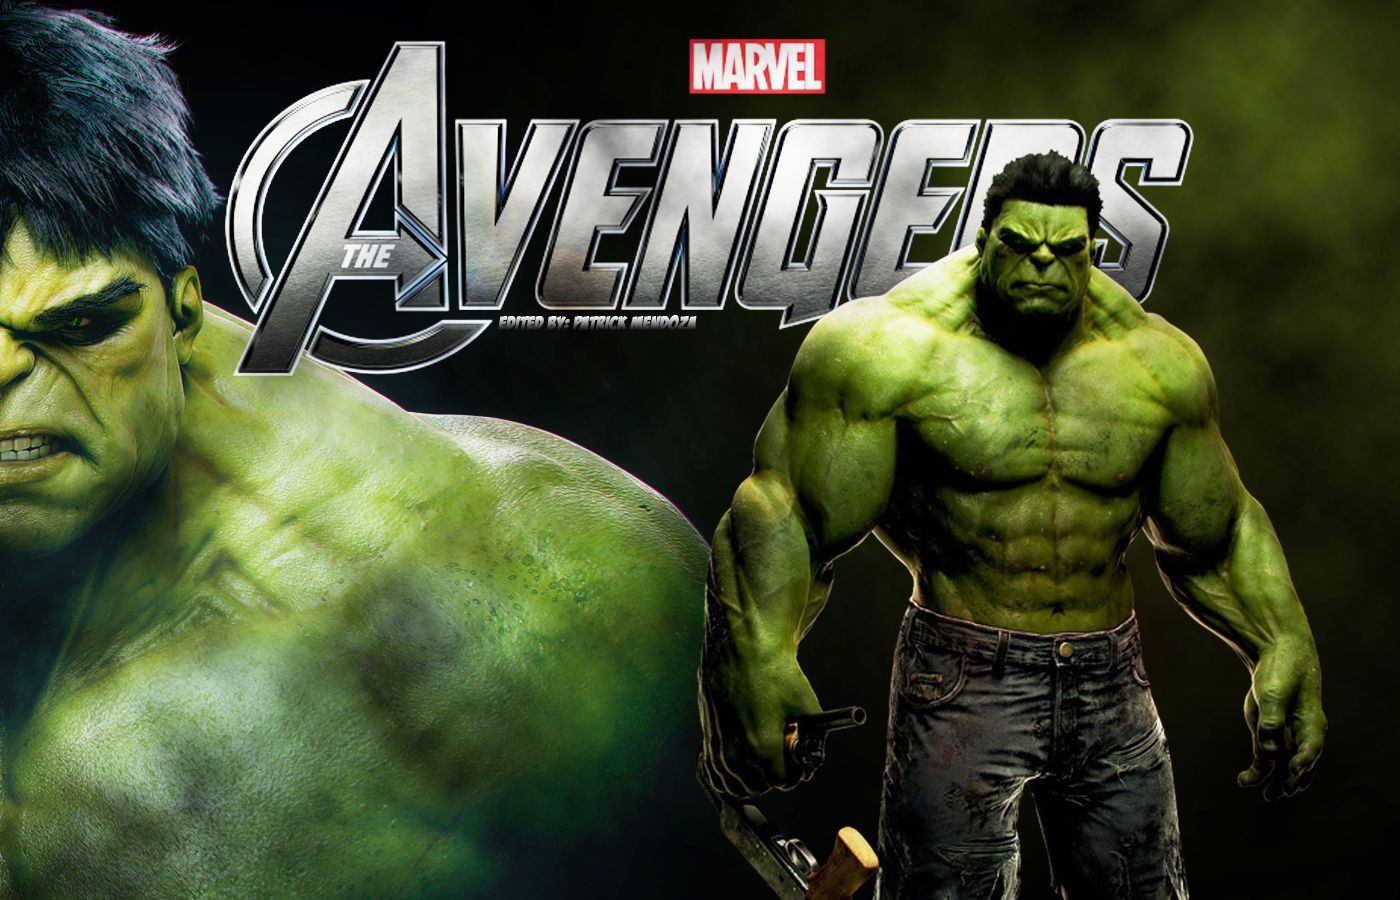 Hulk Avengers Wallpaper HD for Desktop